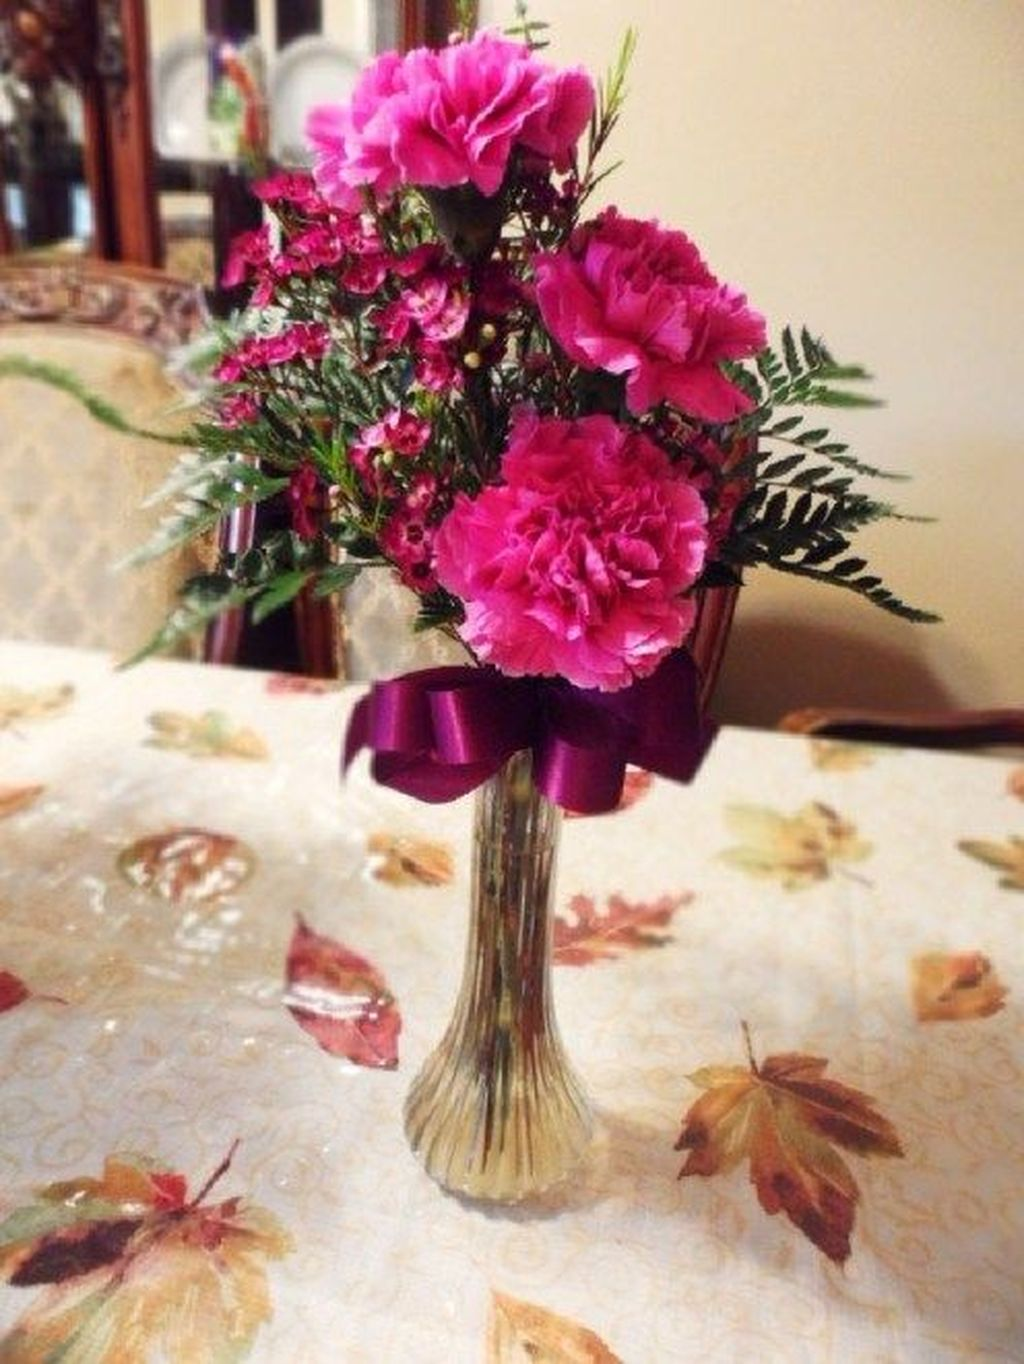 Lovely Bud Vase Centerpiece Decor Ideas For Your Dining Table 15